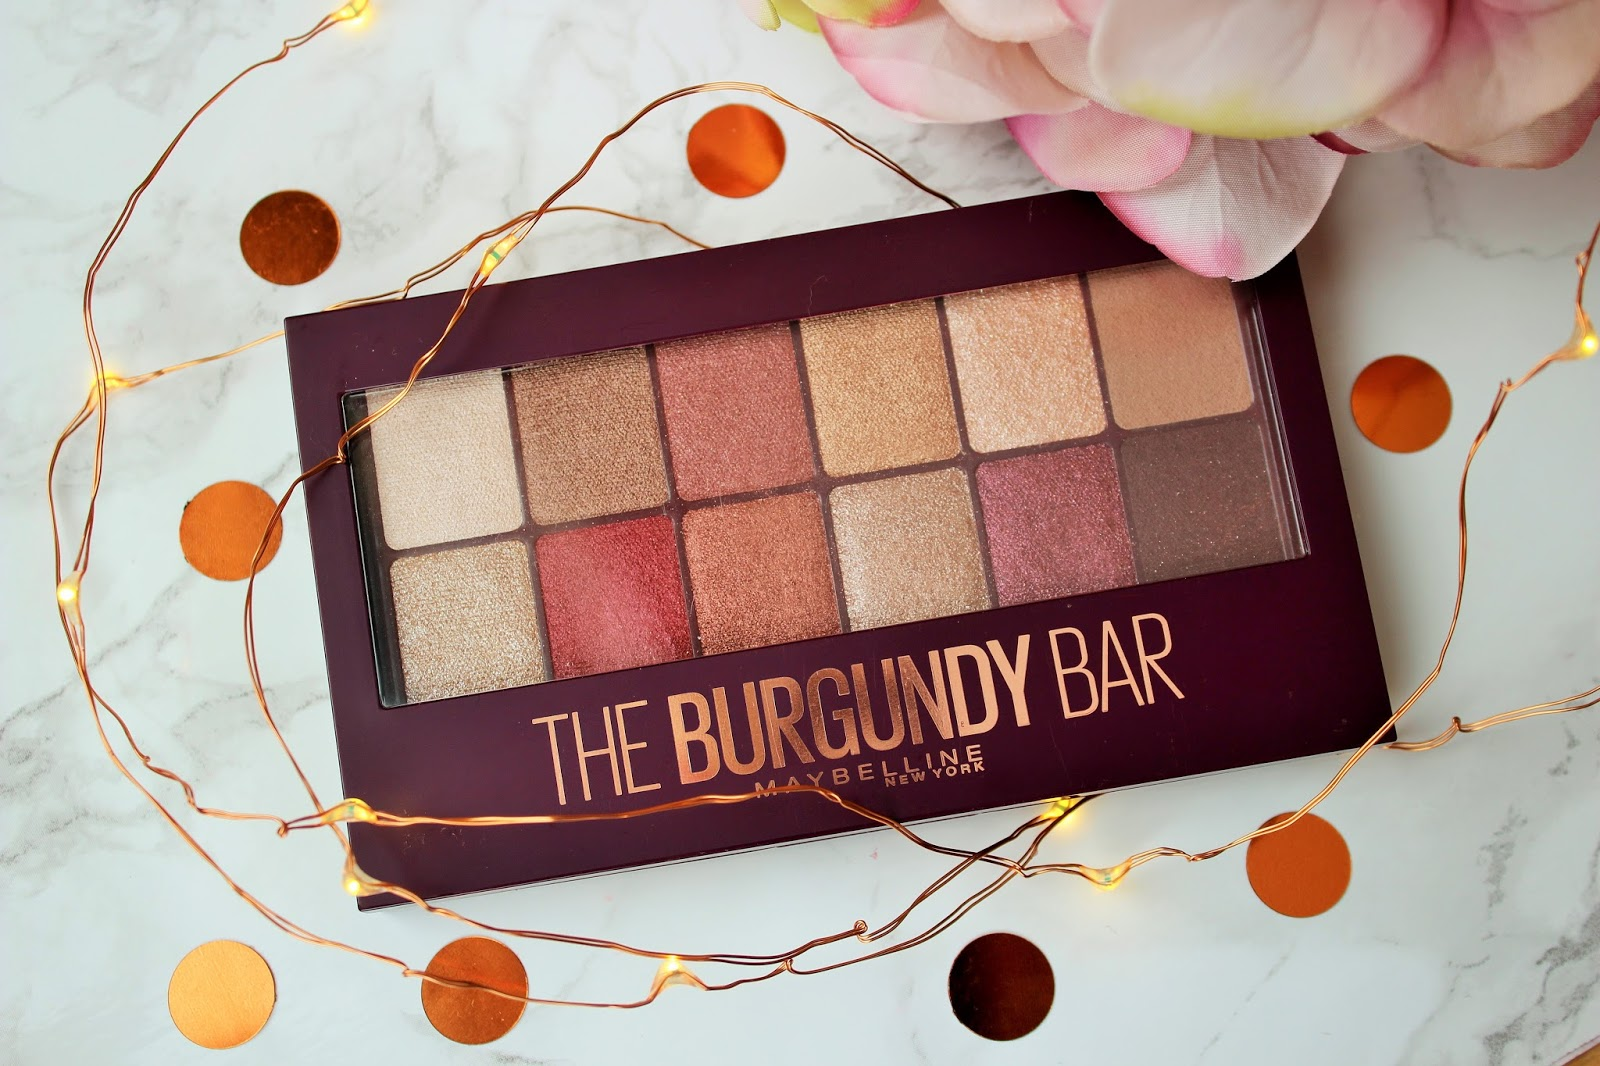 Maybelline The Burgundy Bar Eyeshadow Palette Review - 3